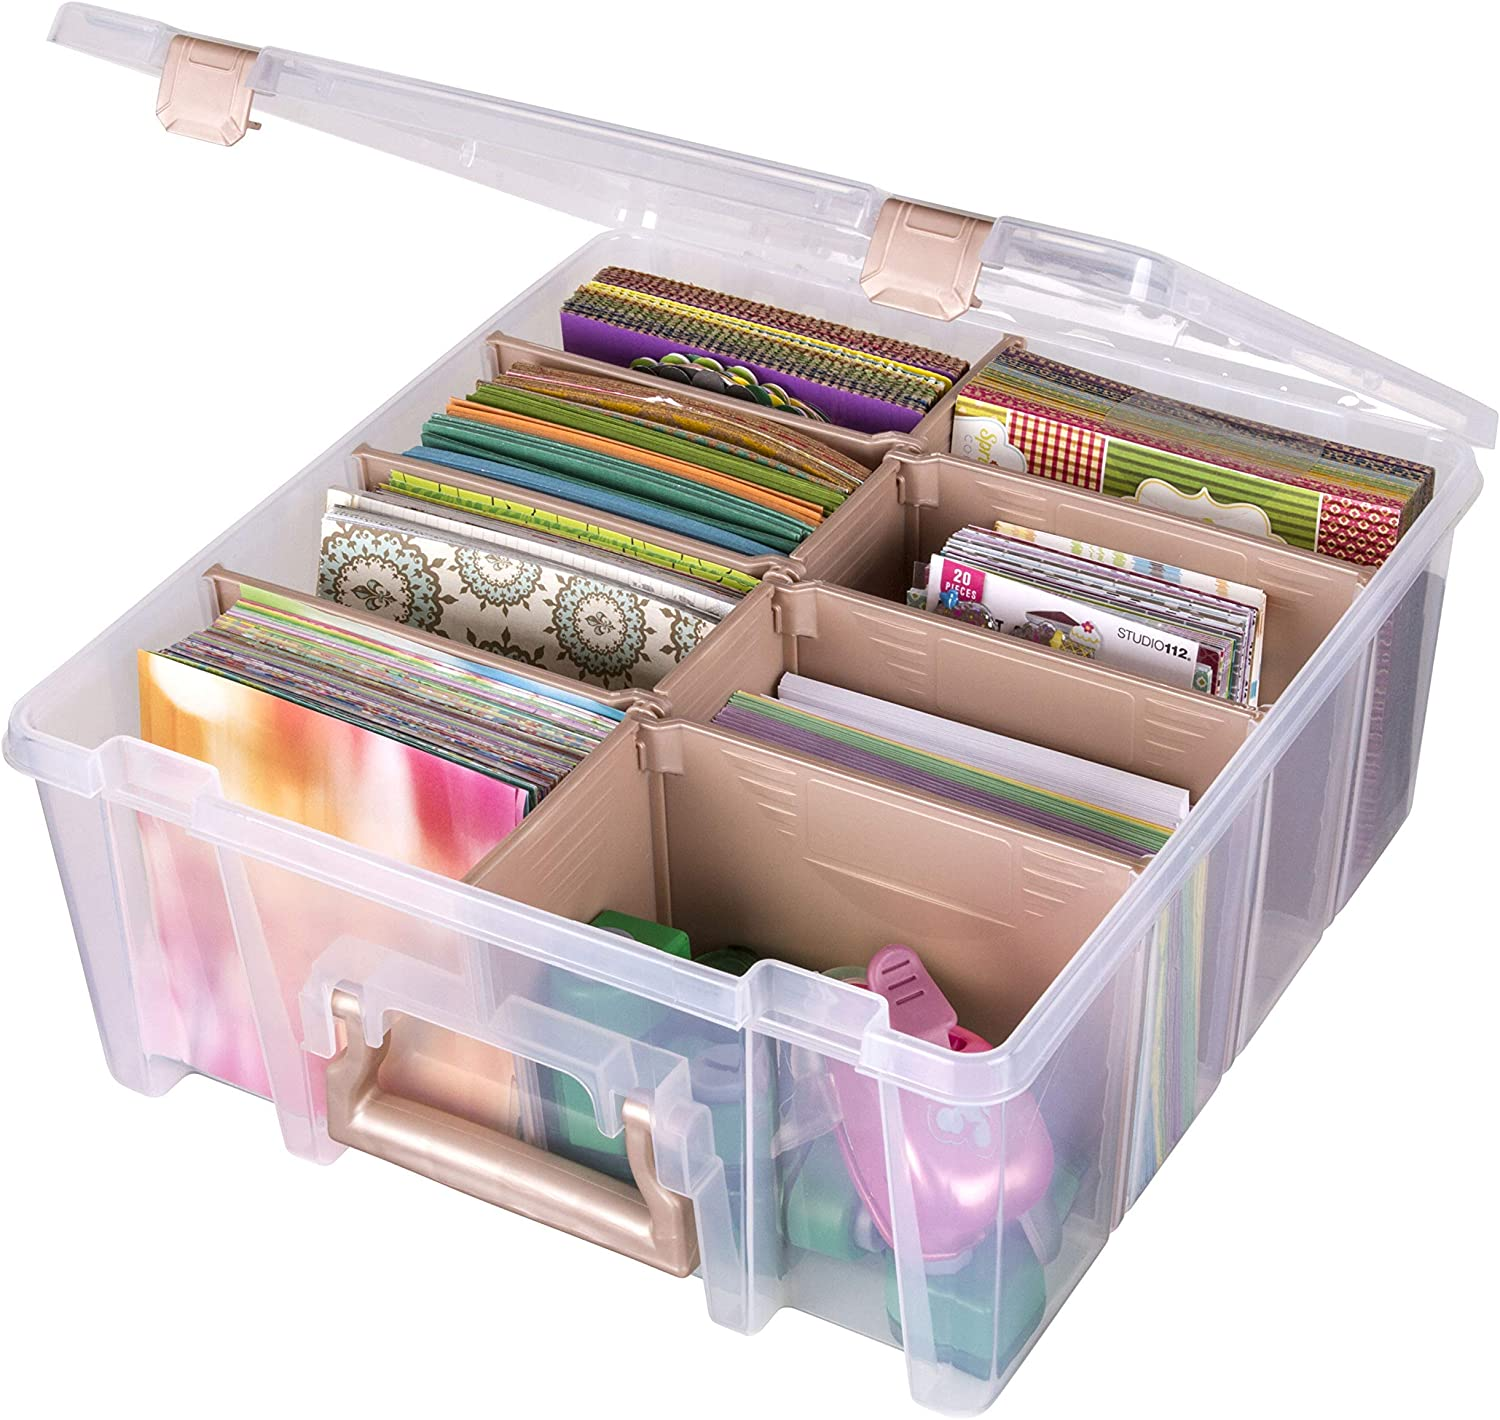 Clear with Rose Gold Accents Plastic Storage Case, Portable Art and Craft Organizer with Handle 1 Pack